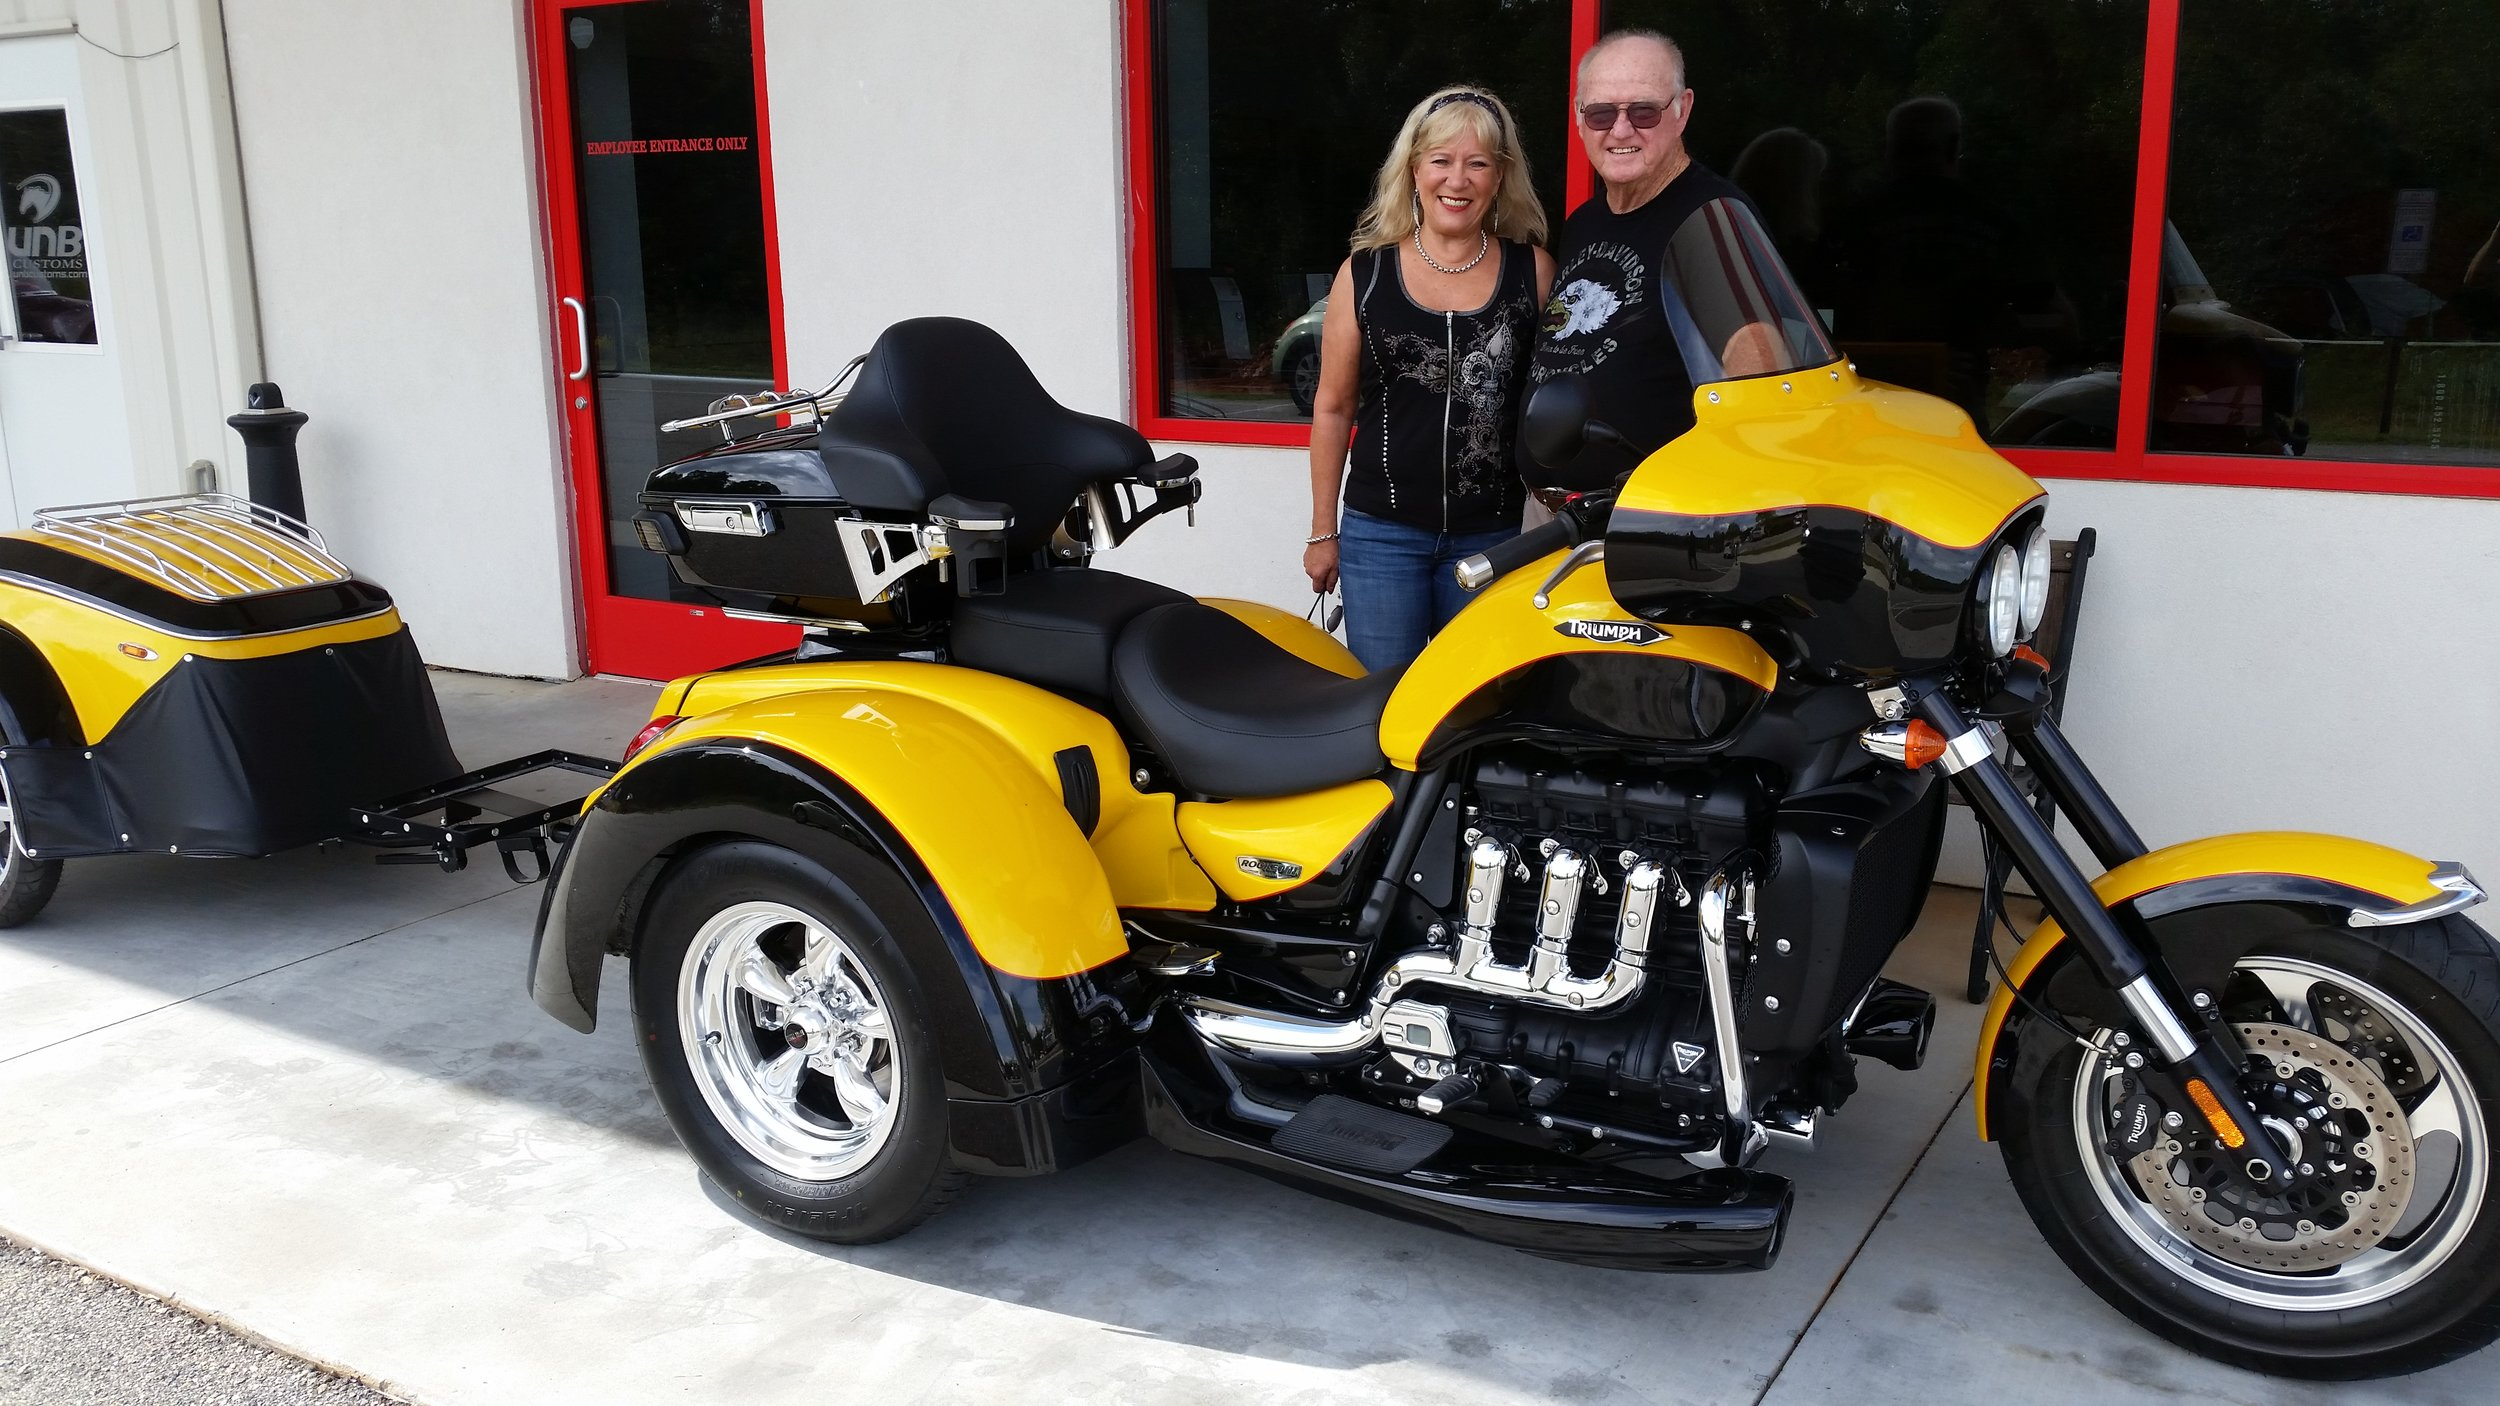 Larry and Iris with the completed Triumph Rocket III